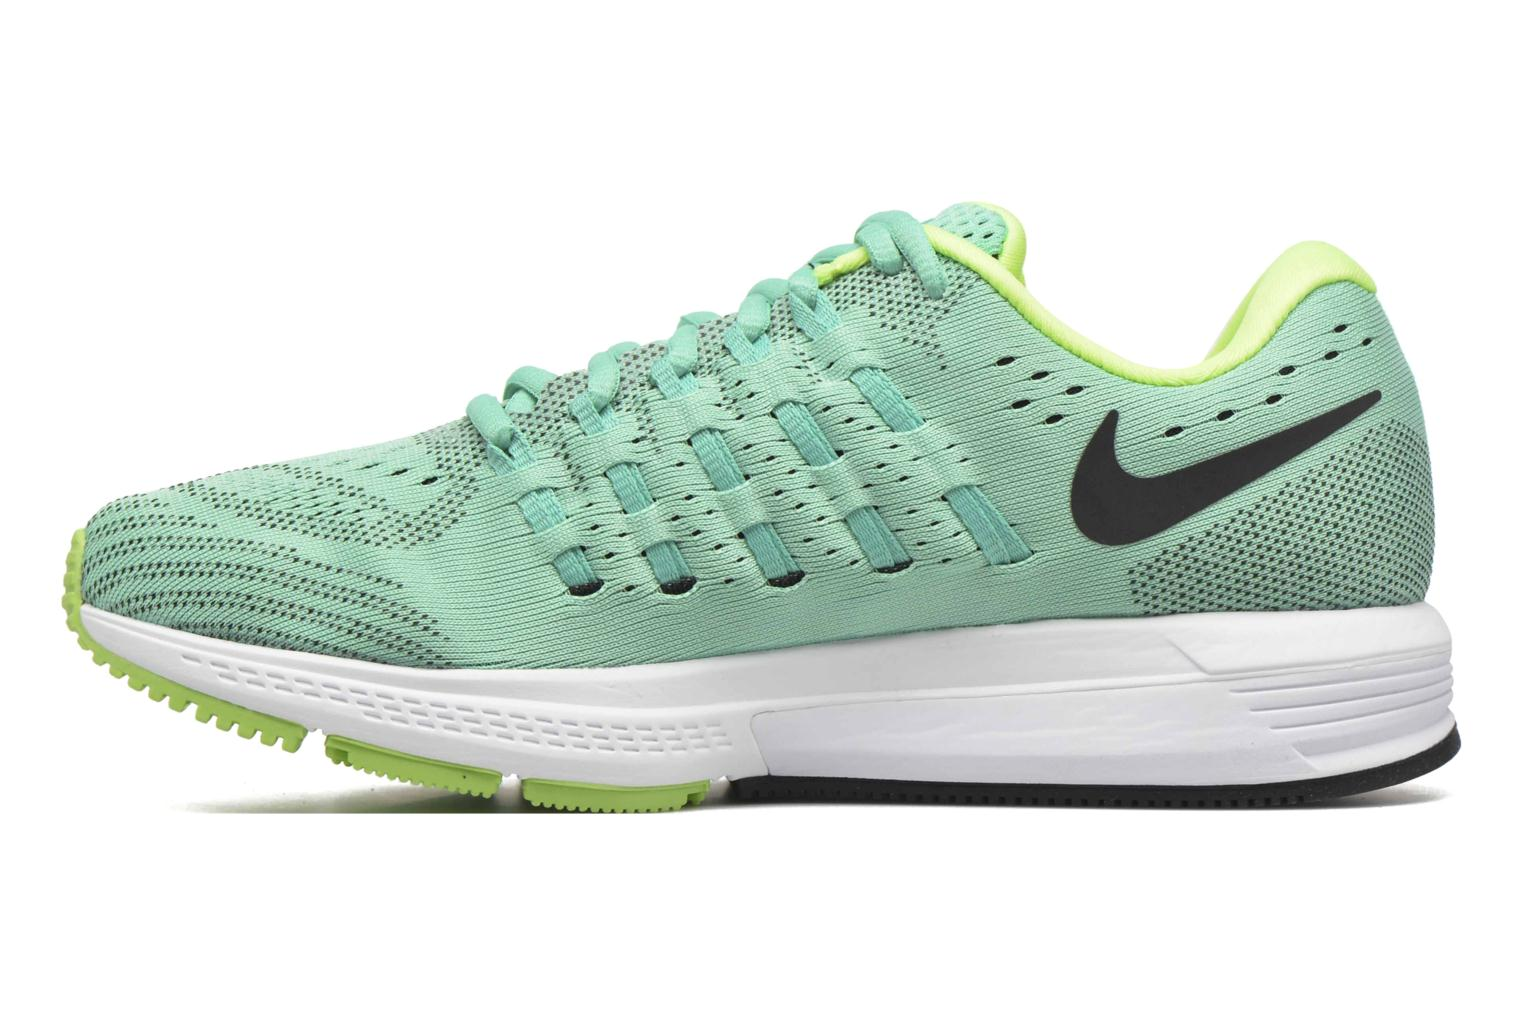 Wmns Nike Air Zoom Vomero 11 Green Glow/Black-Menta-White